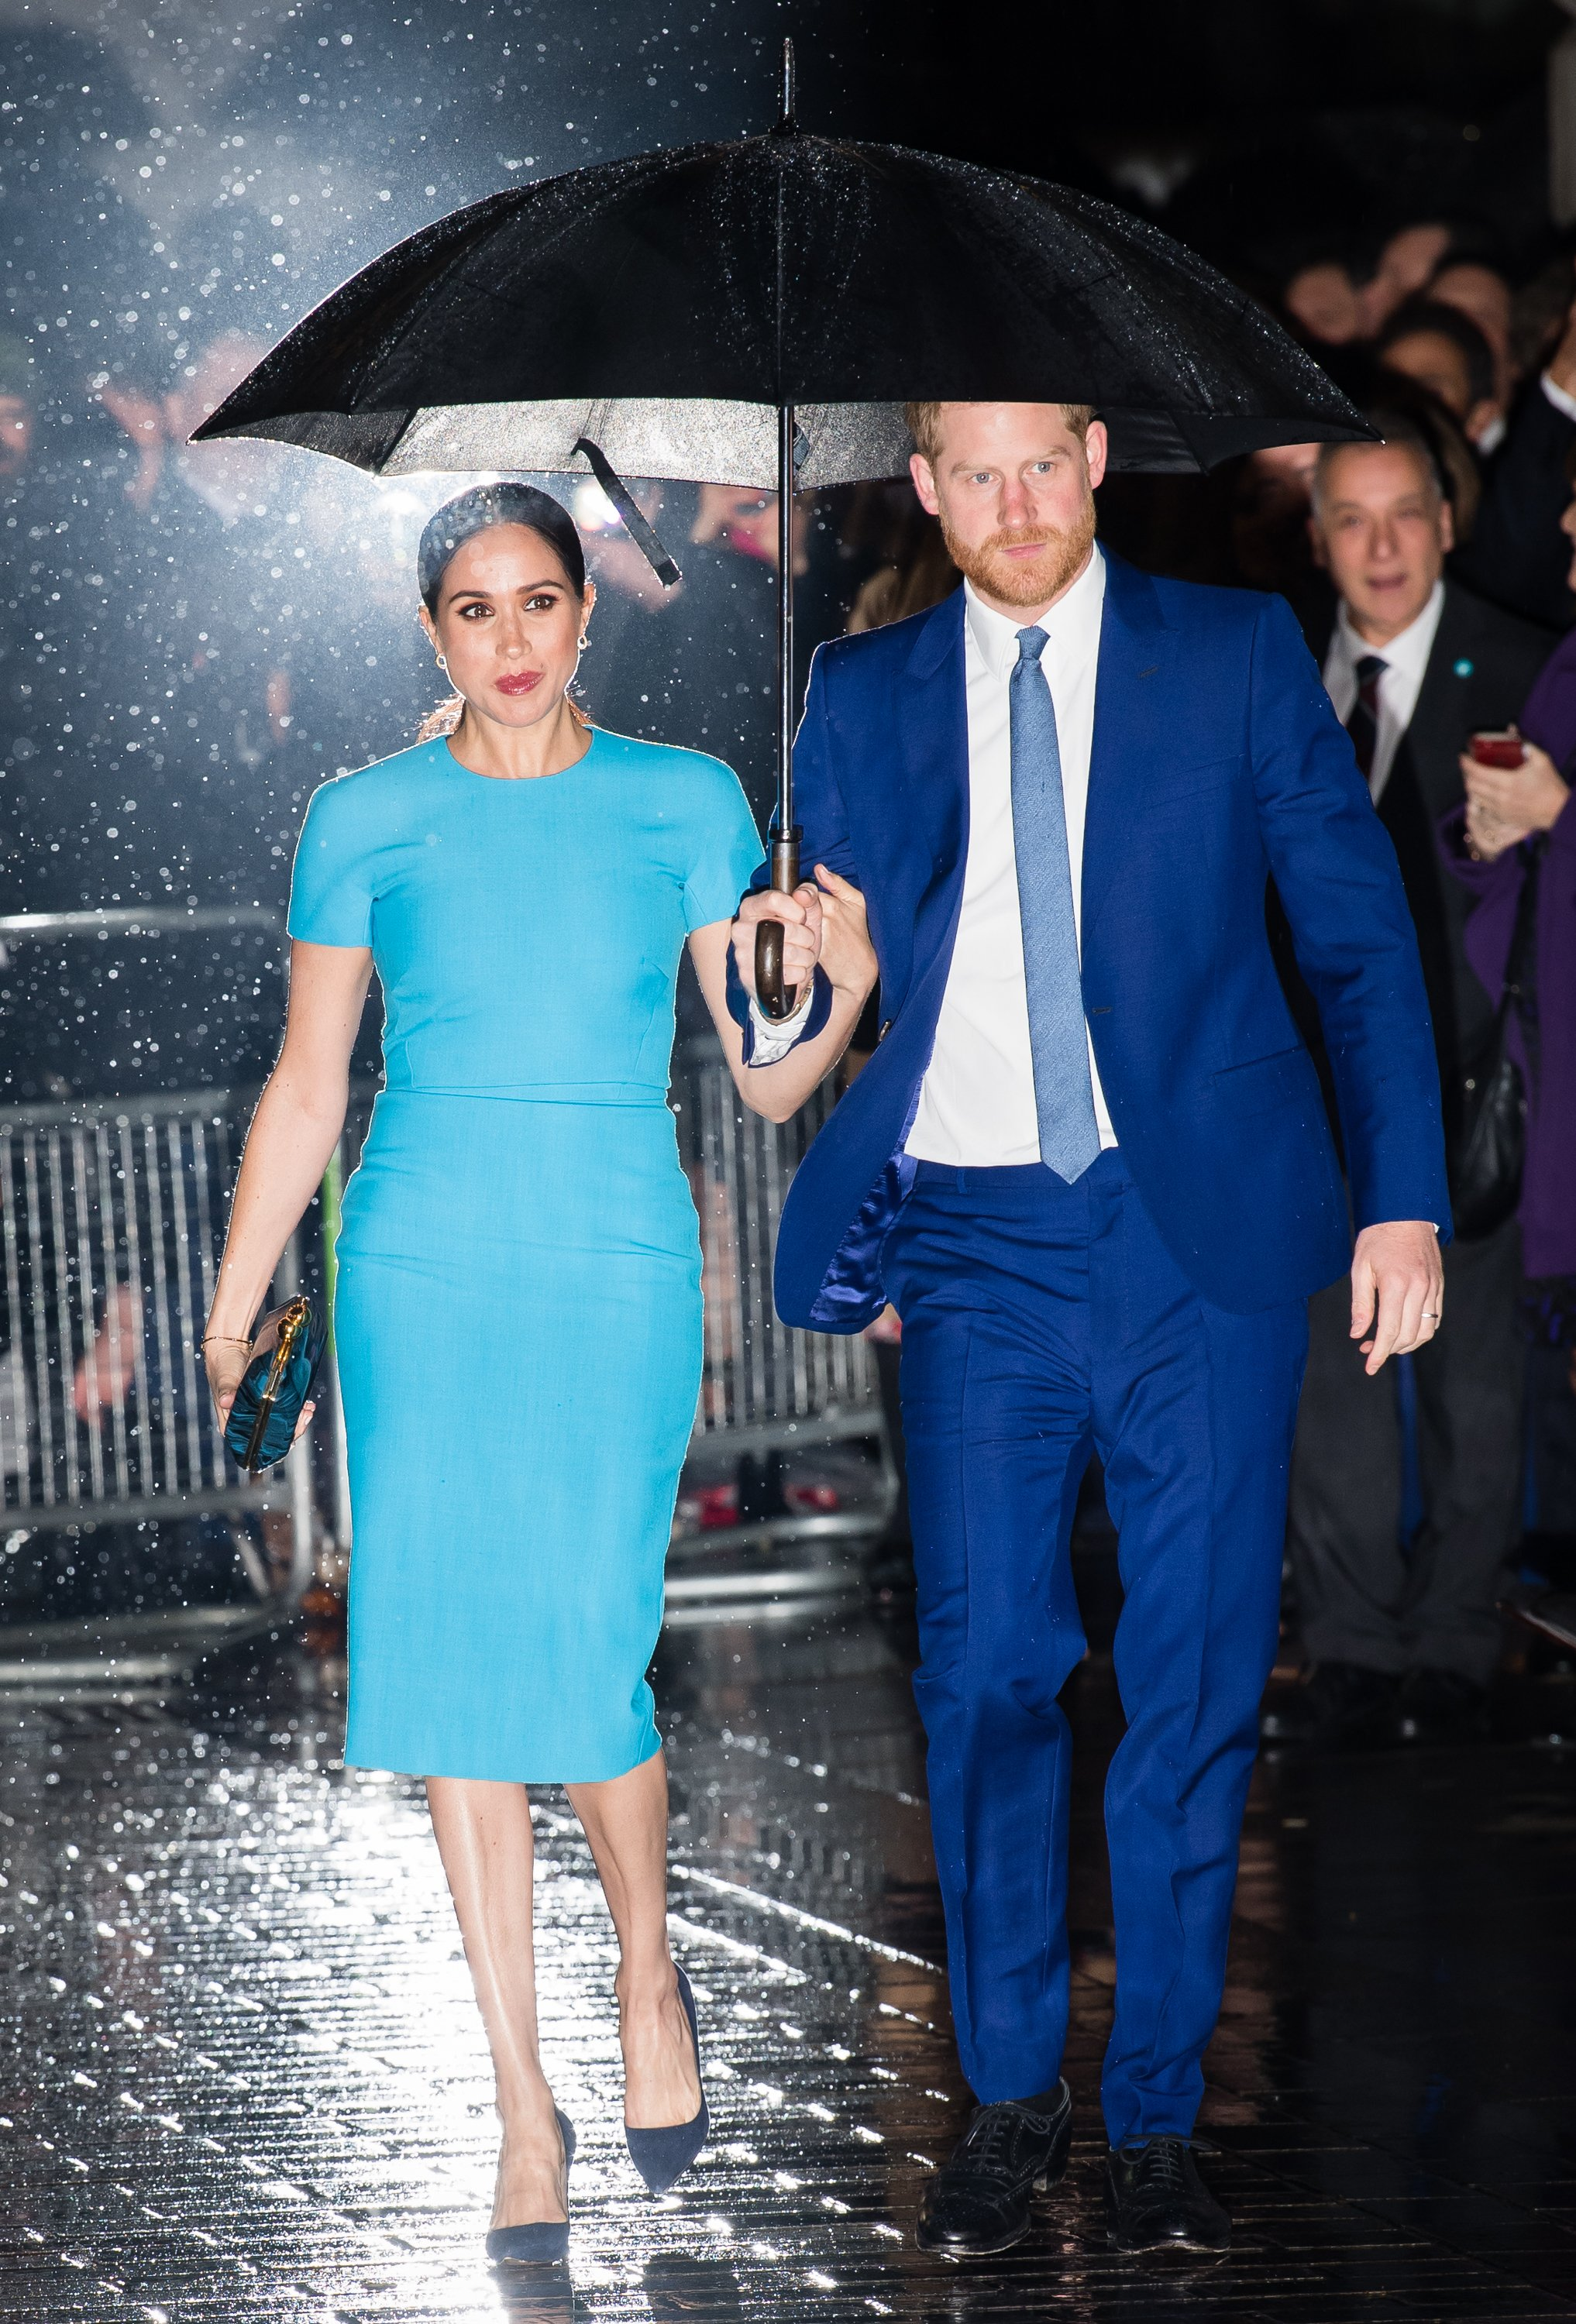 Prince Harry and Meghan Markle attend The Endeavour Fund Awards on March 05, 2020, in London, England | Photo: Getty Images.